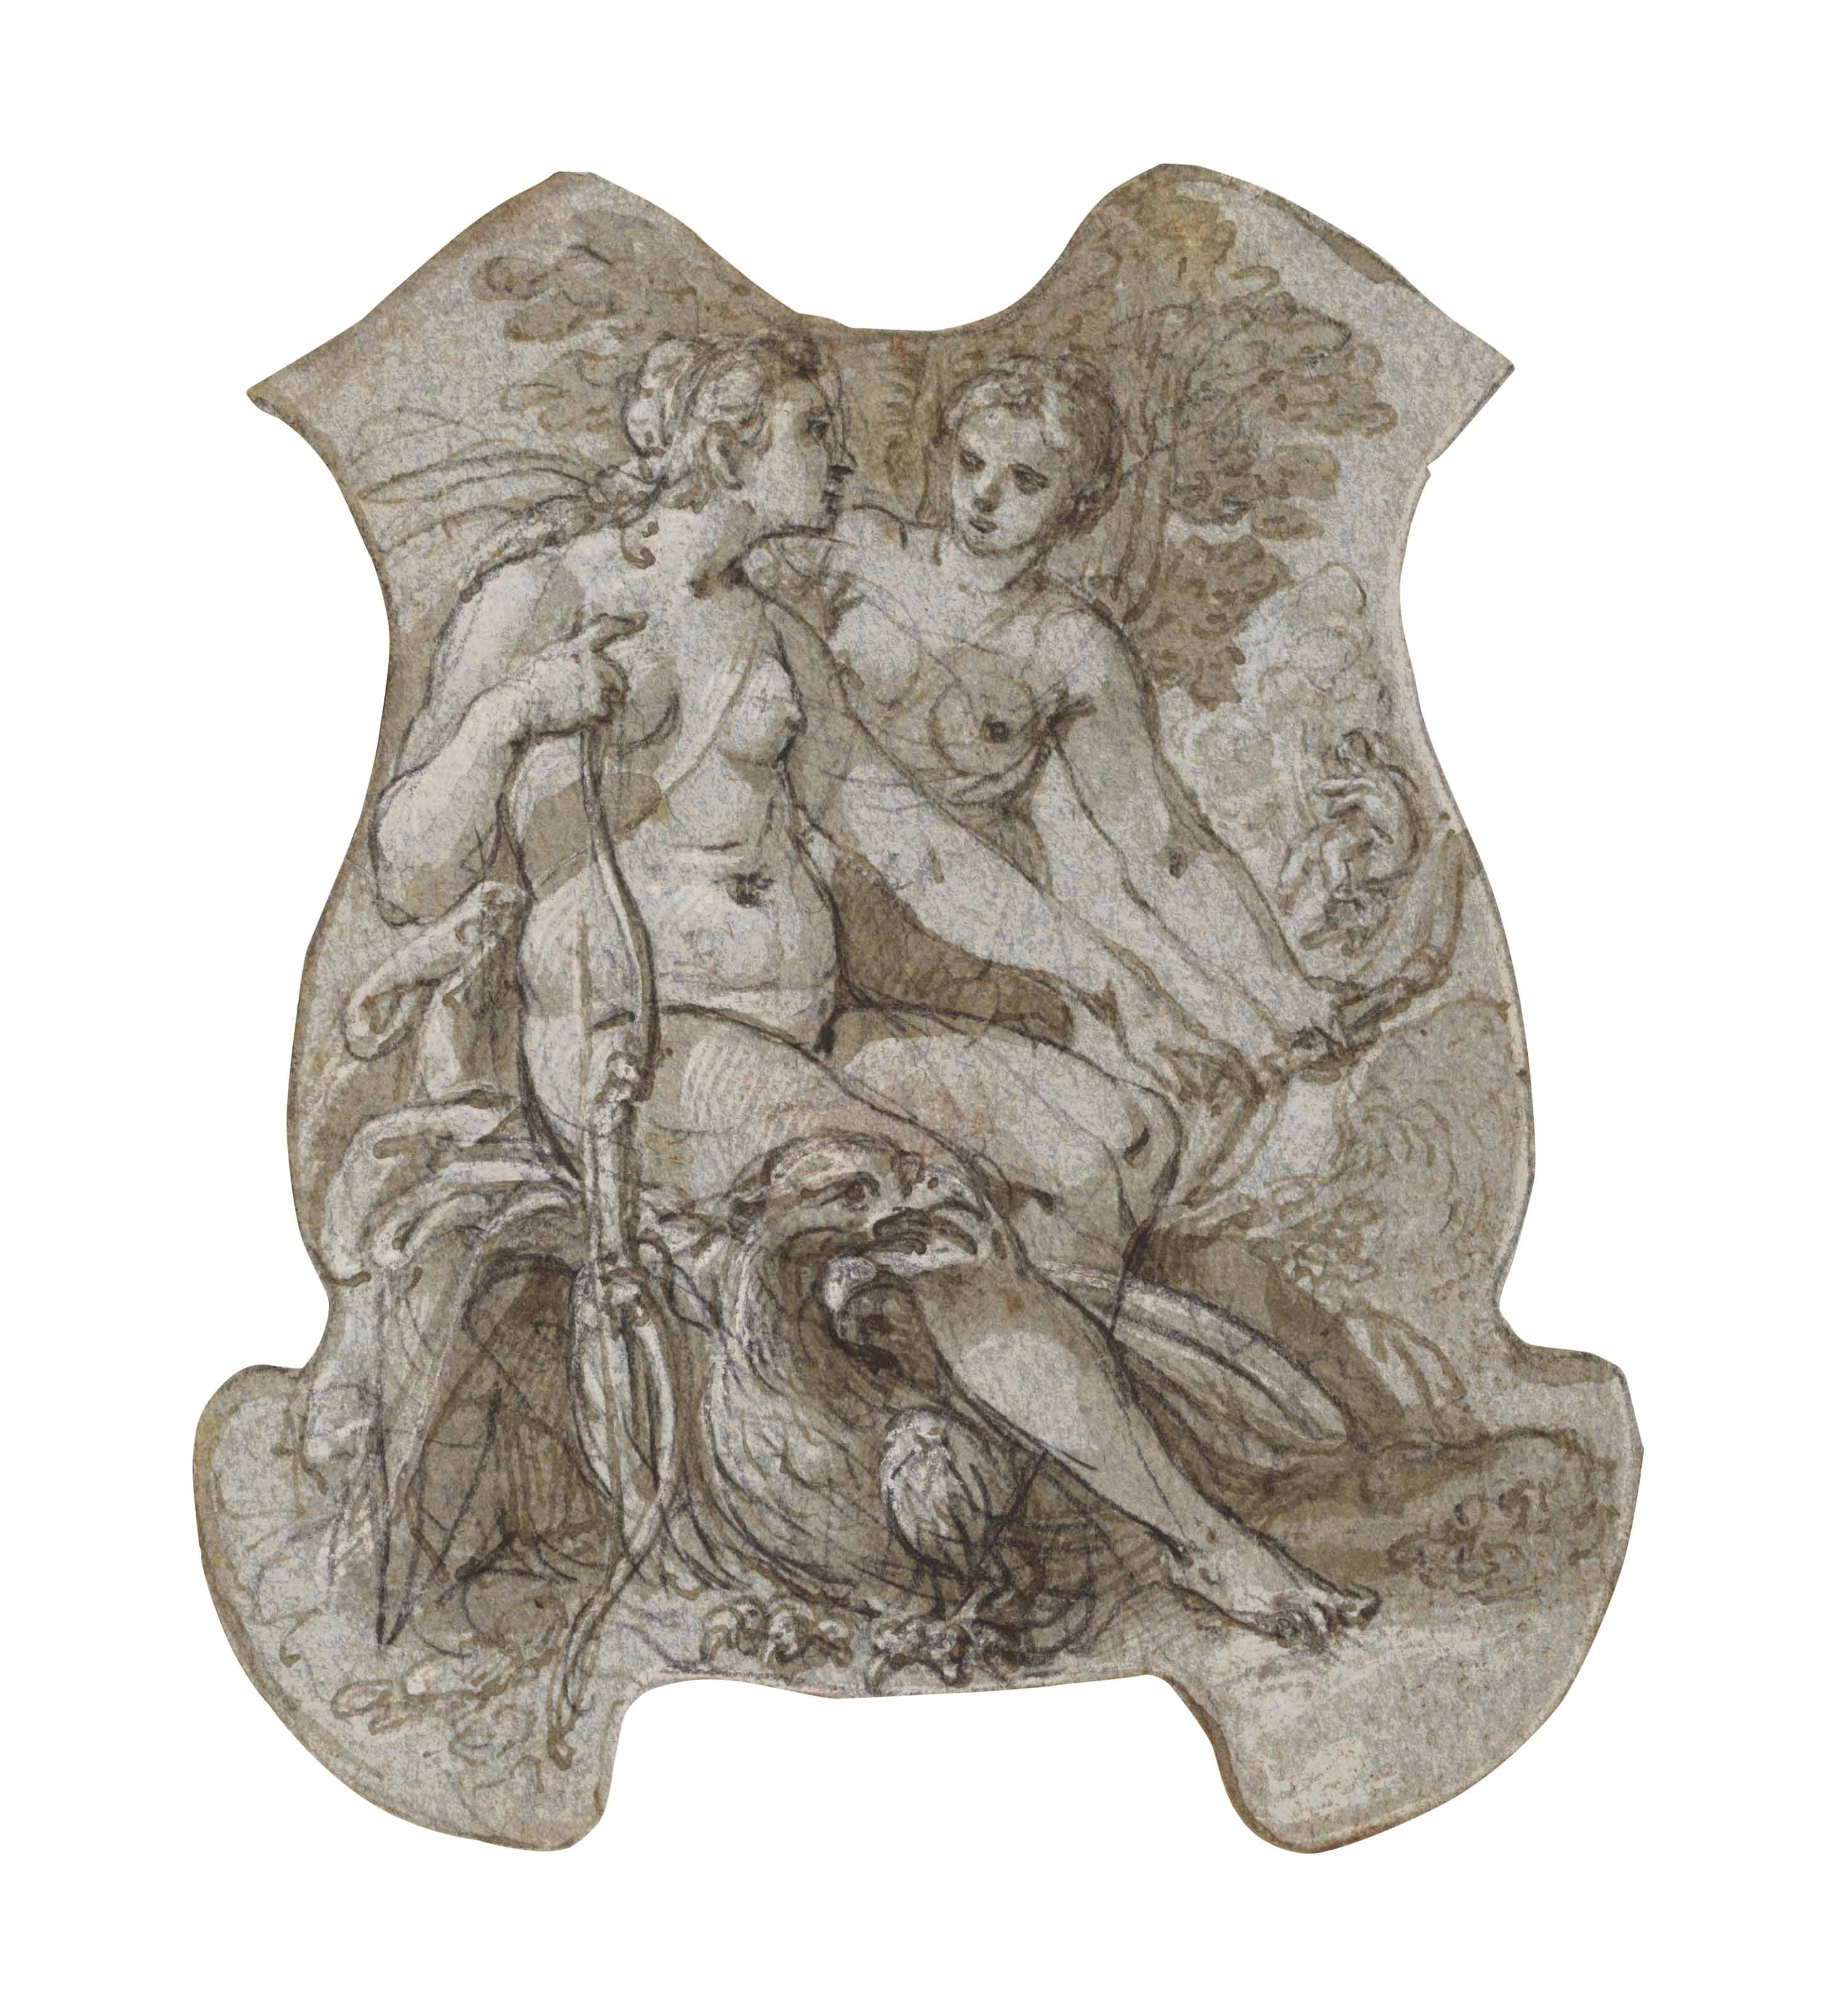 Jupiter seducing Callisto in the guise of Diana, probably a design for silverware